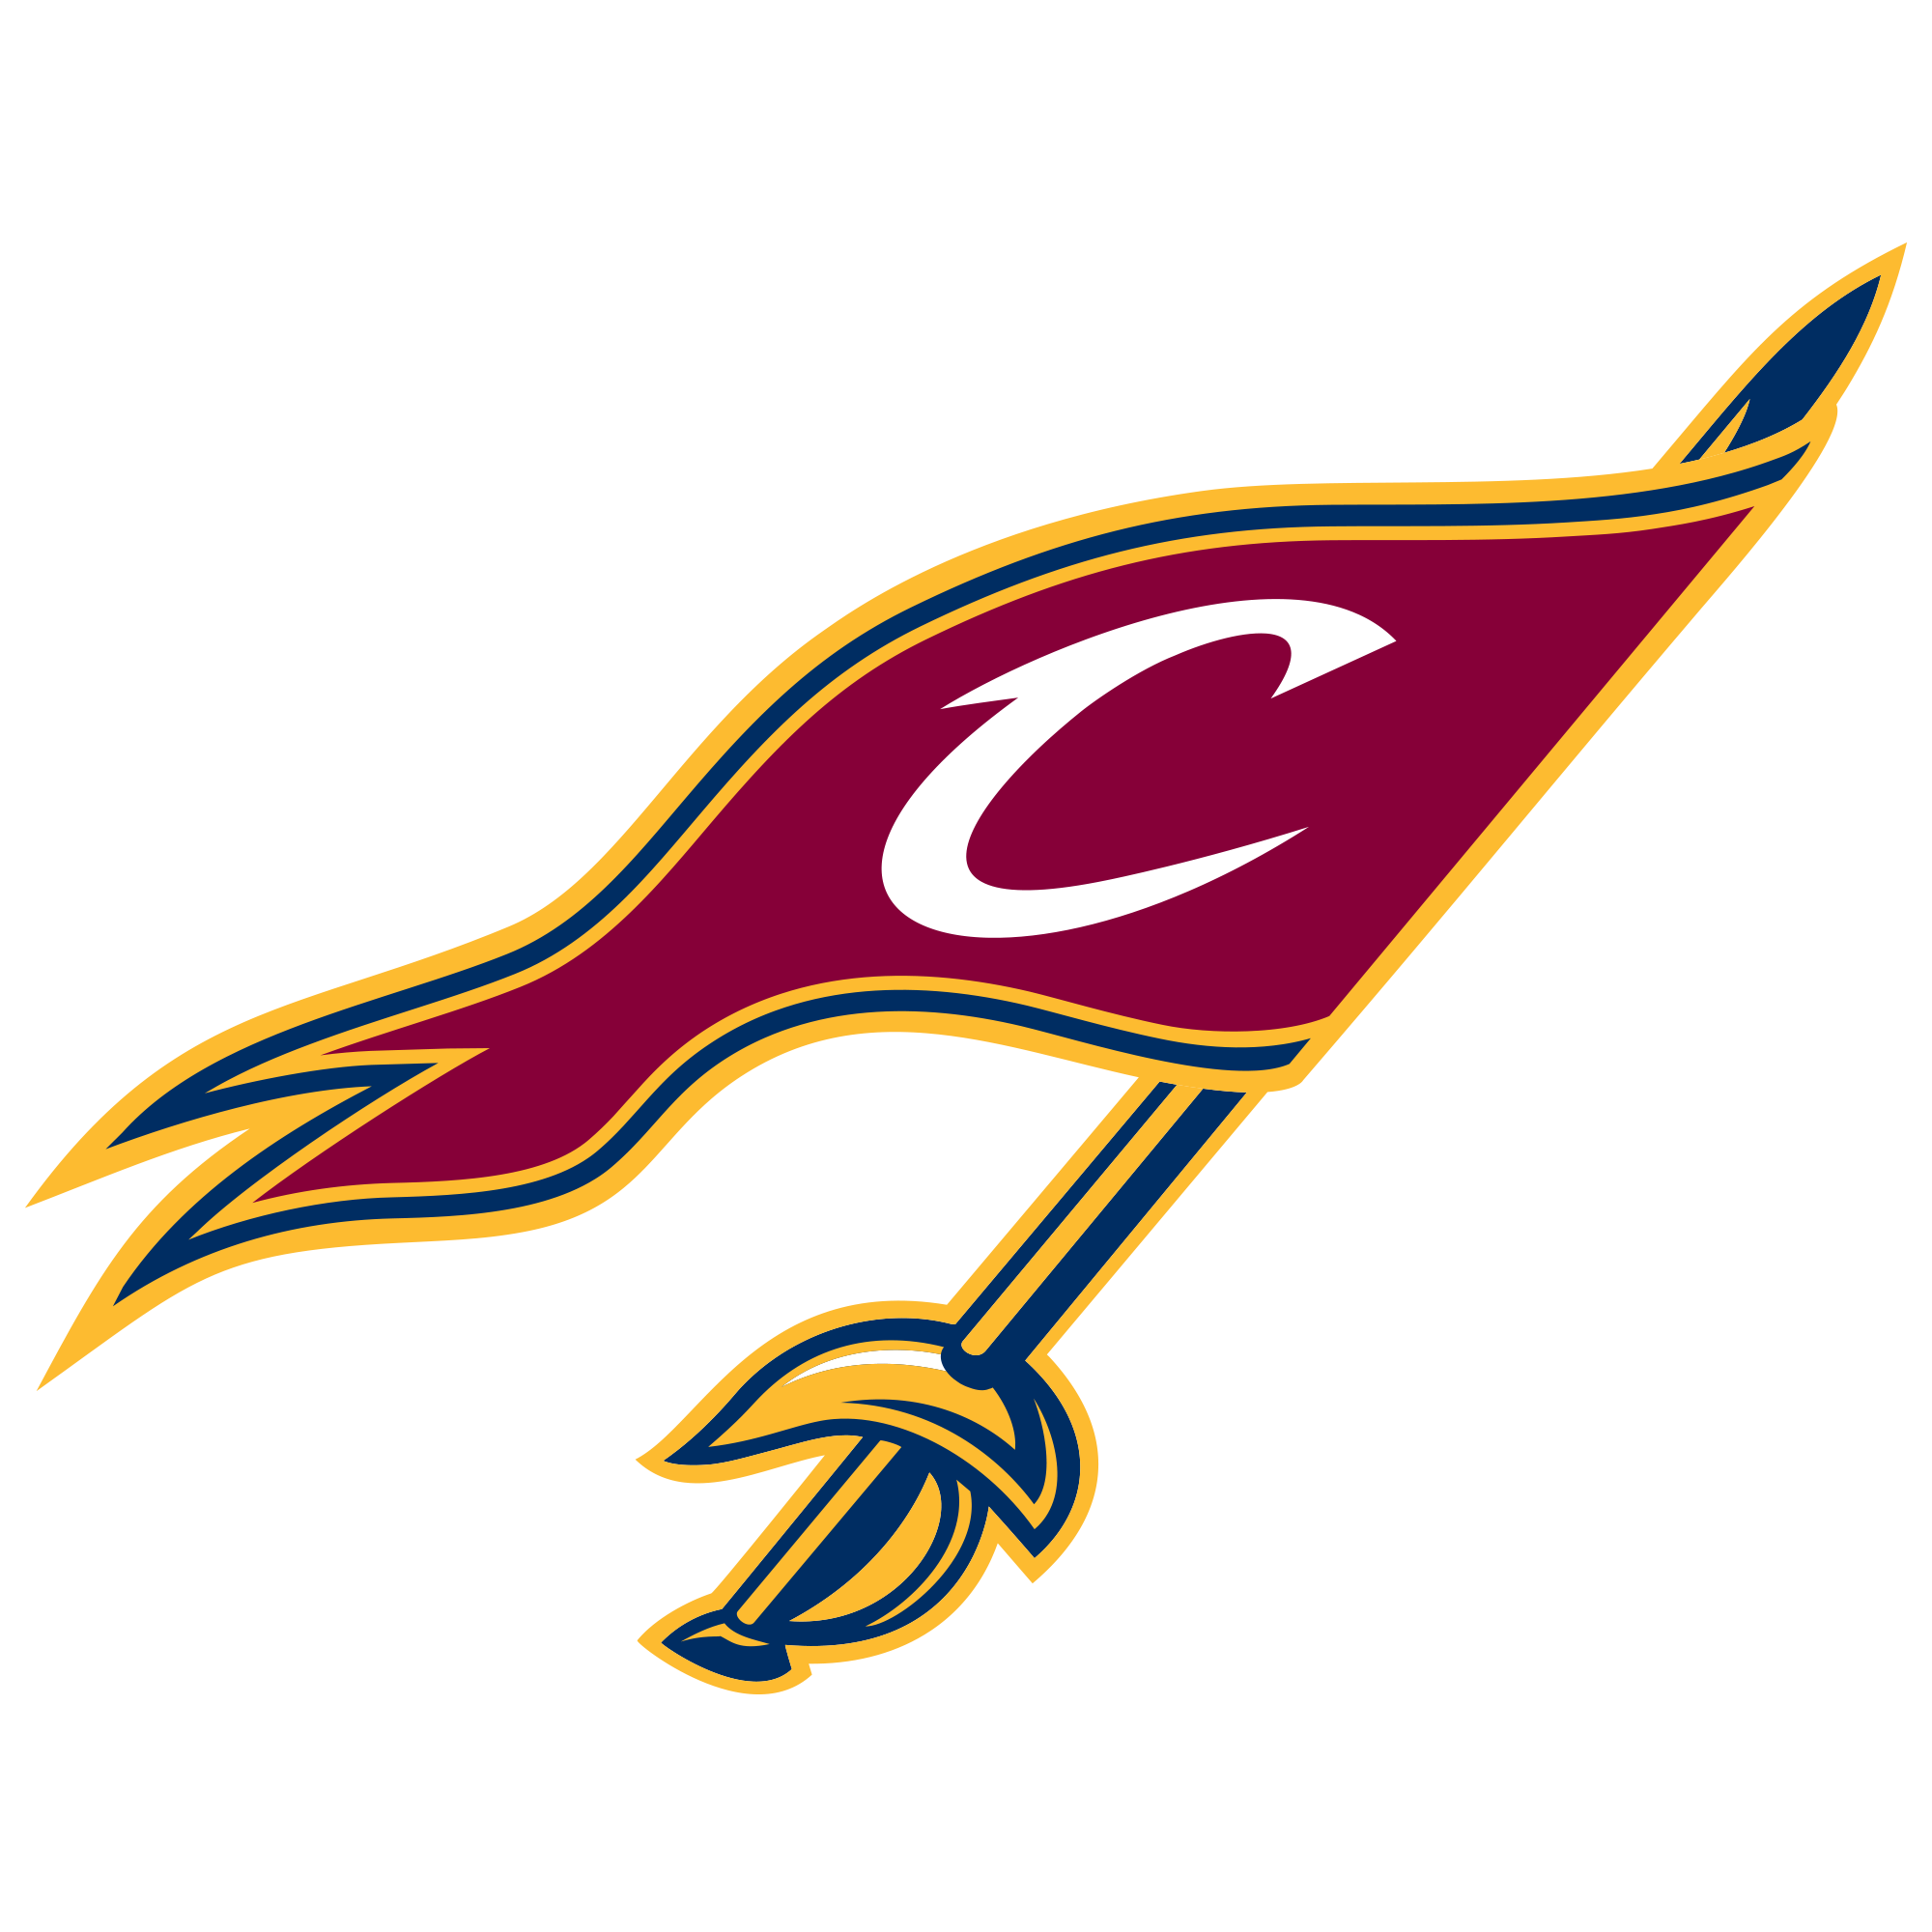 Cavs logo png. Cleveland cavaliers yahoo image